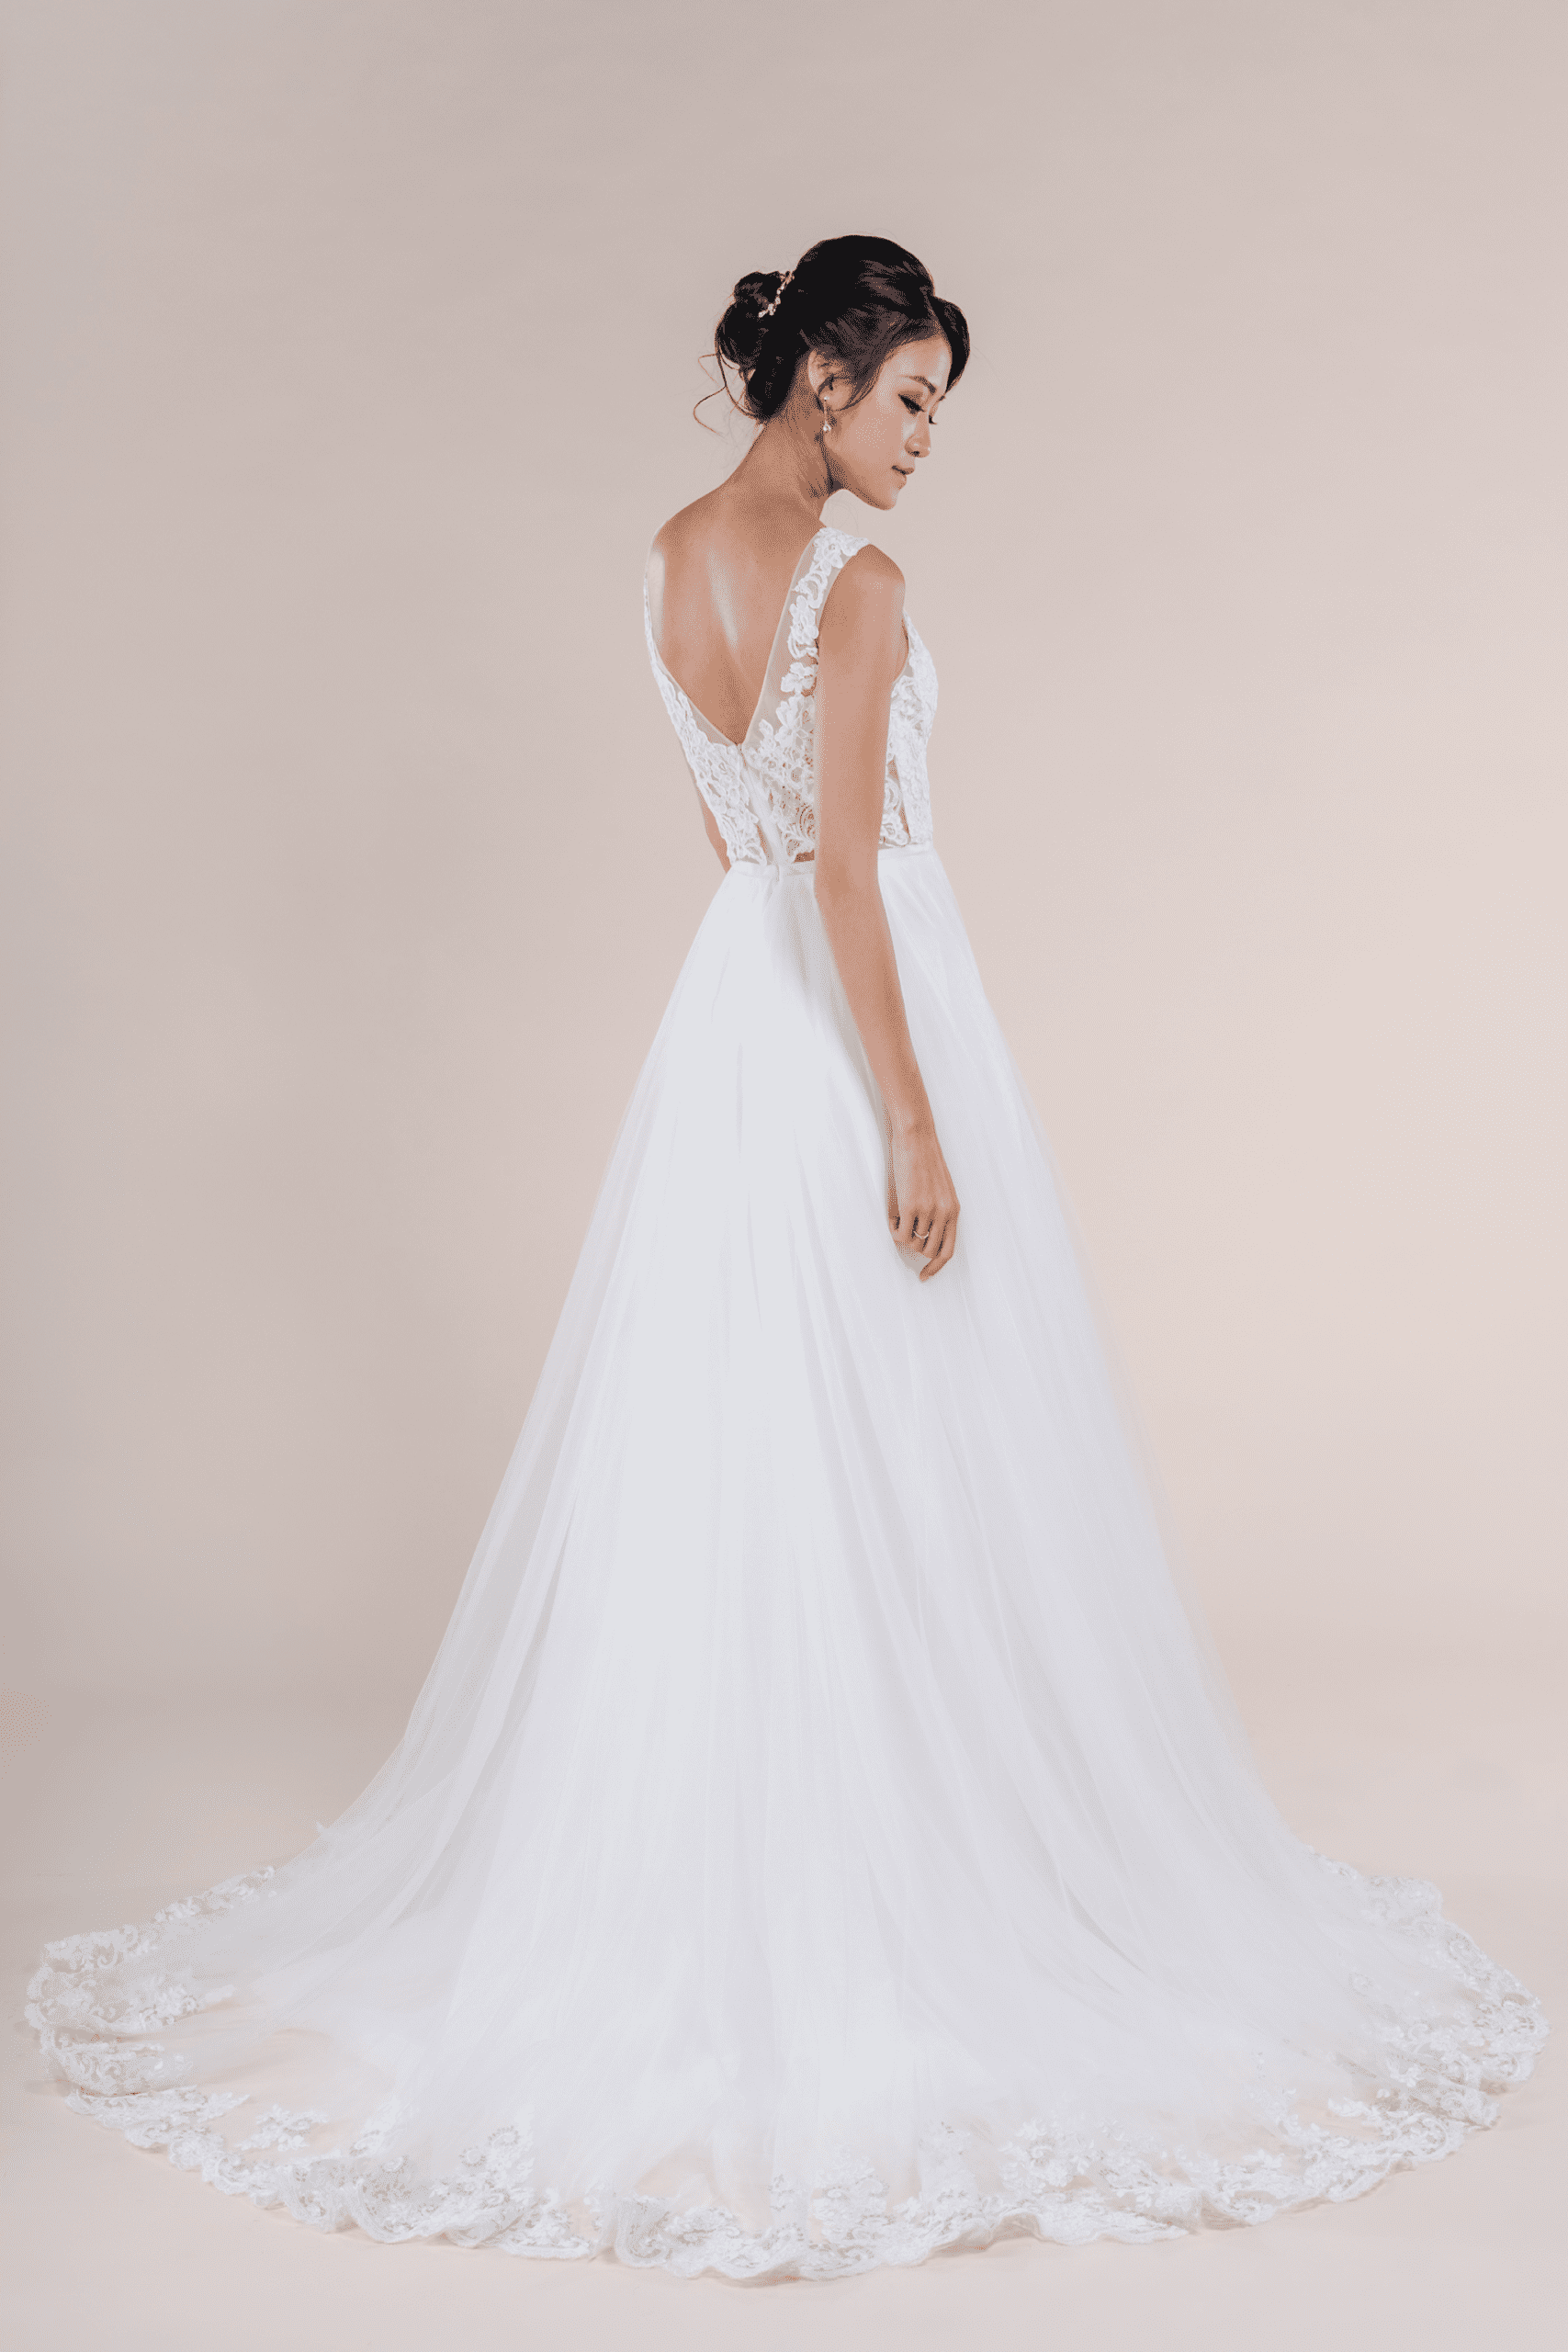 Charlotte-affordable-Bridal-Dress-for-rent-in-Singapore